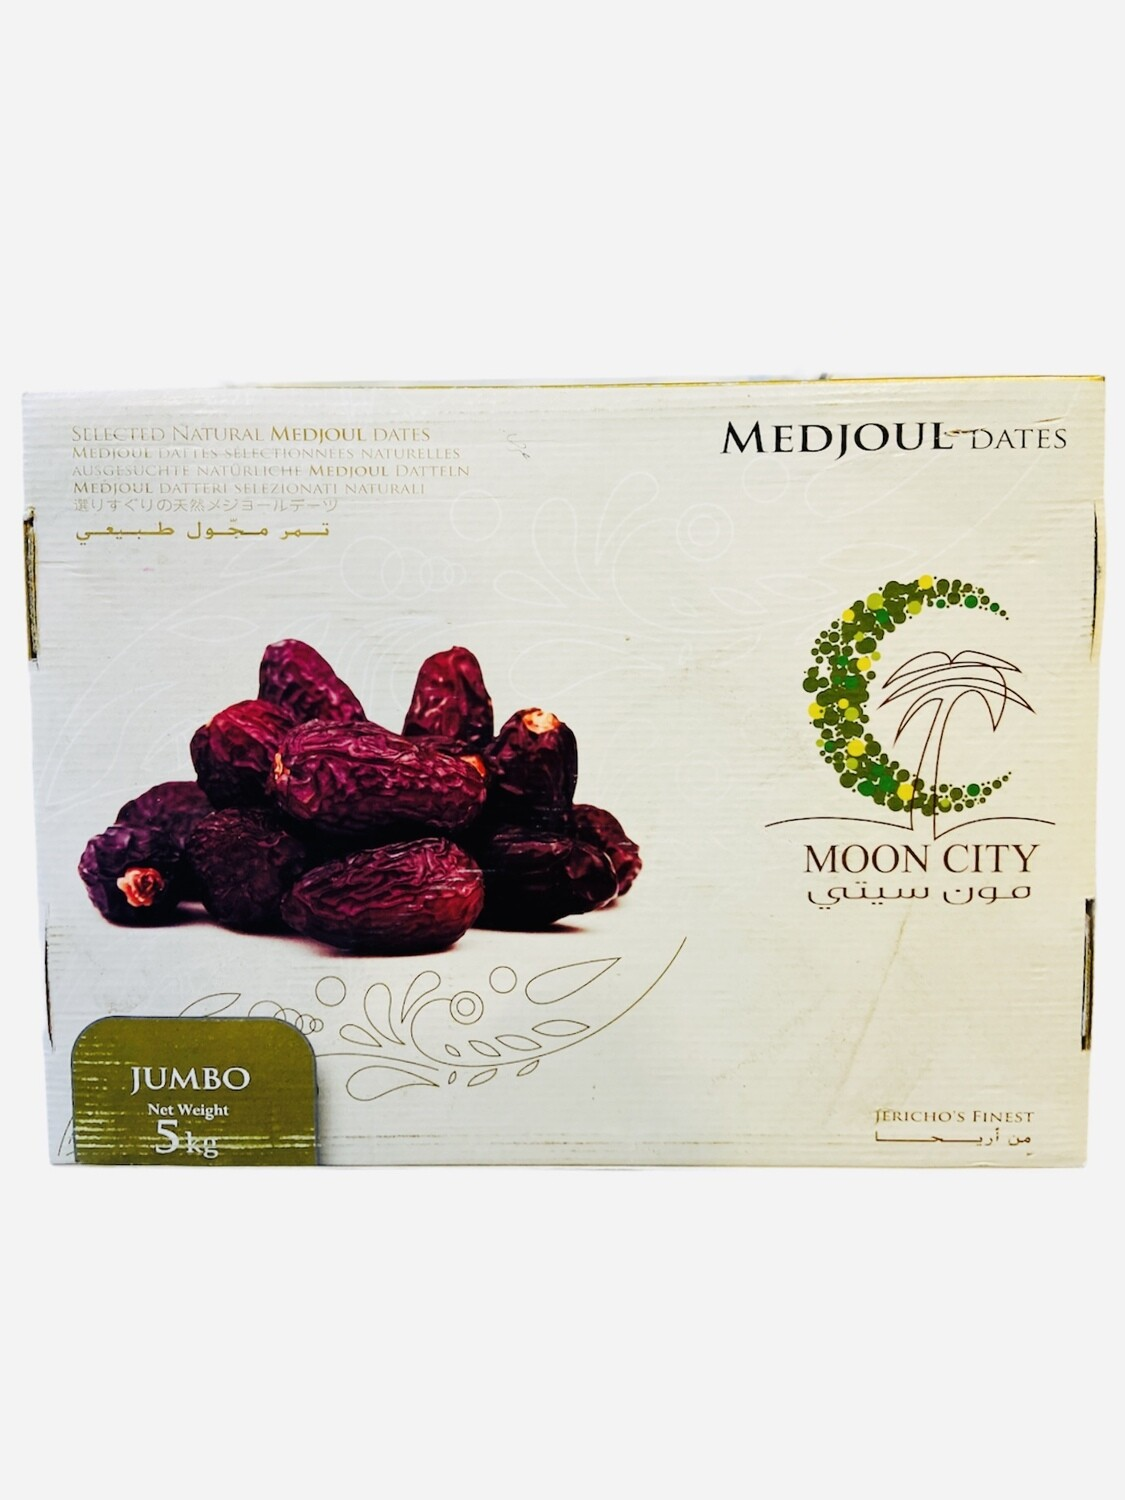 Moon City Medjoul Dates 5kg